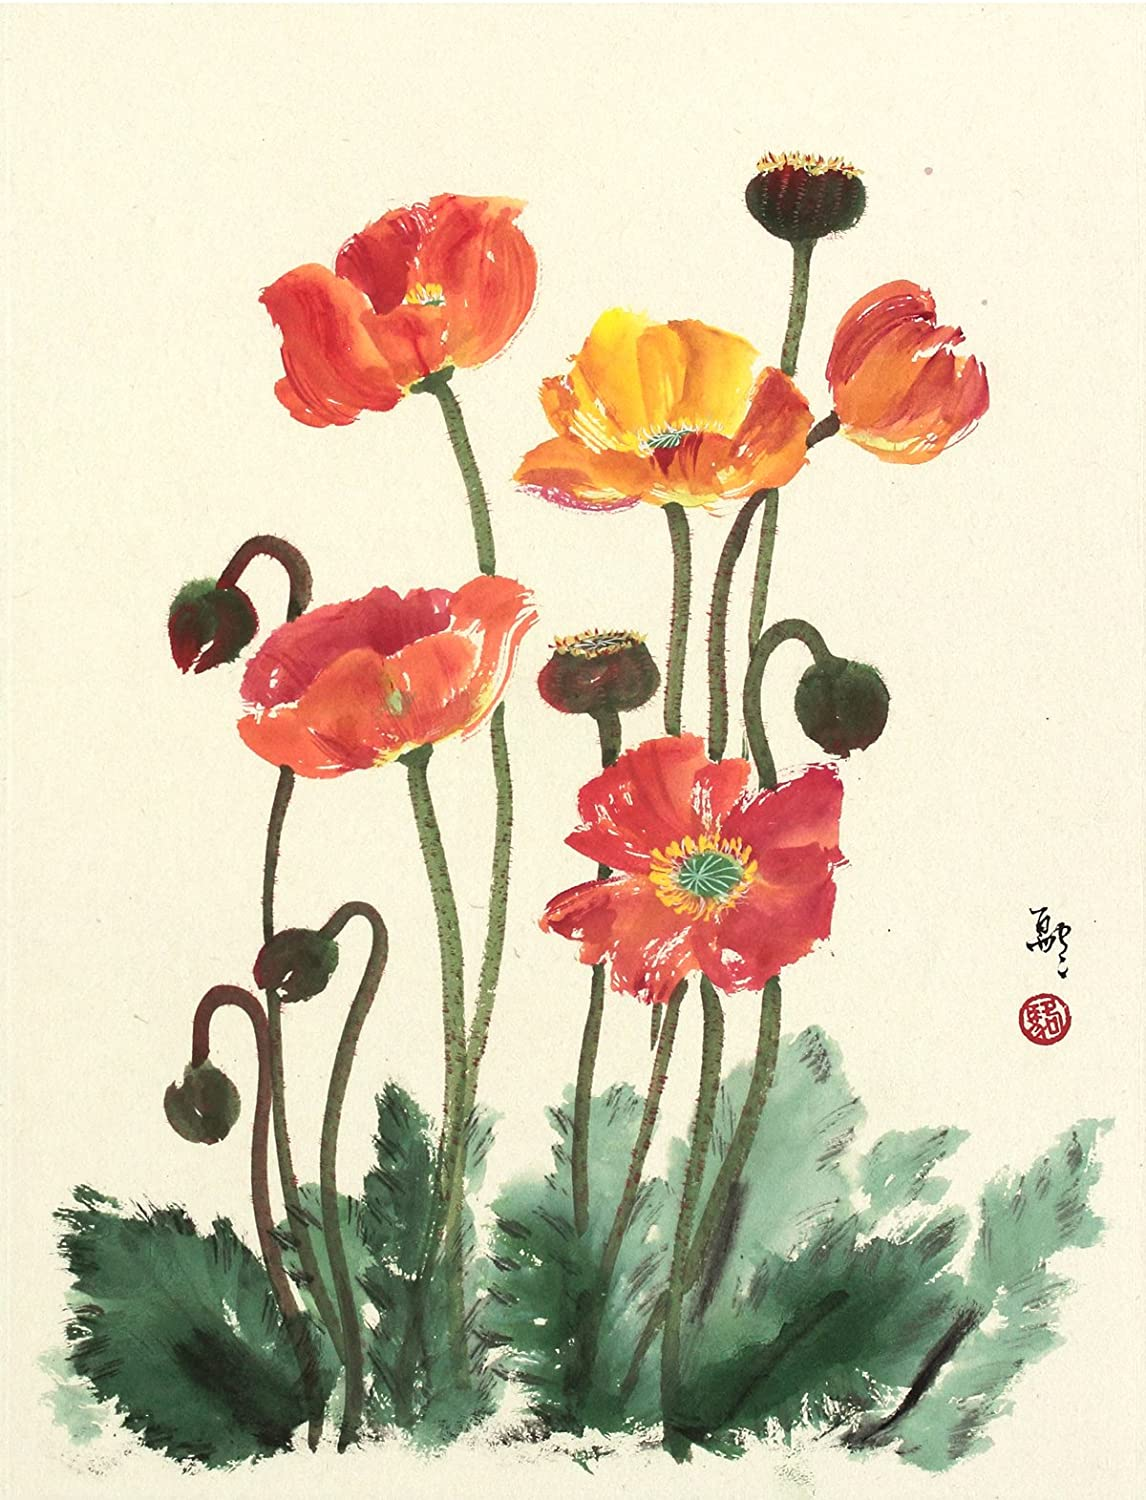 """""""Poppy Love"""" Bright Red Poppies Growing in the Ground, Giclee Print of Sumi-e Flower Painting, 10 X 13 Inches"""